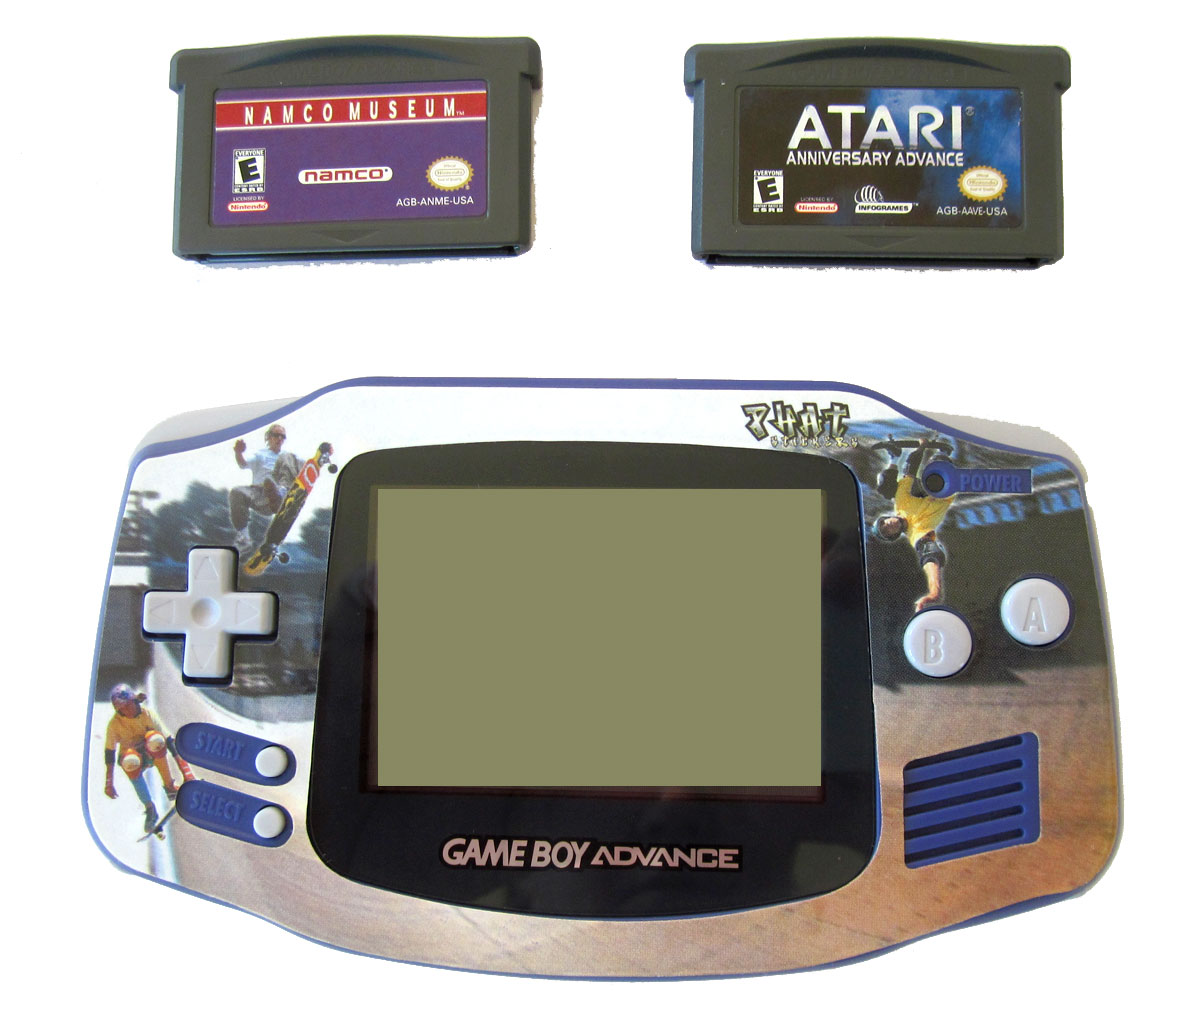 Game boy release date